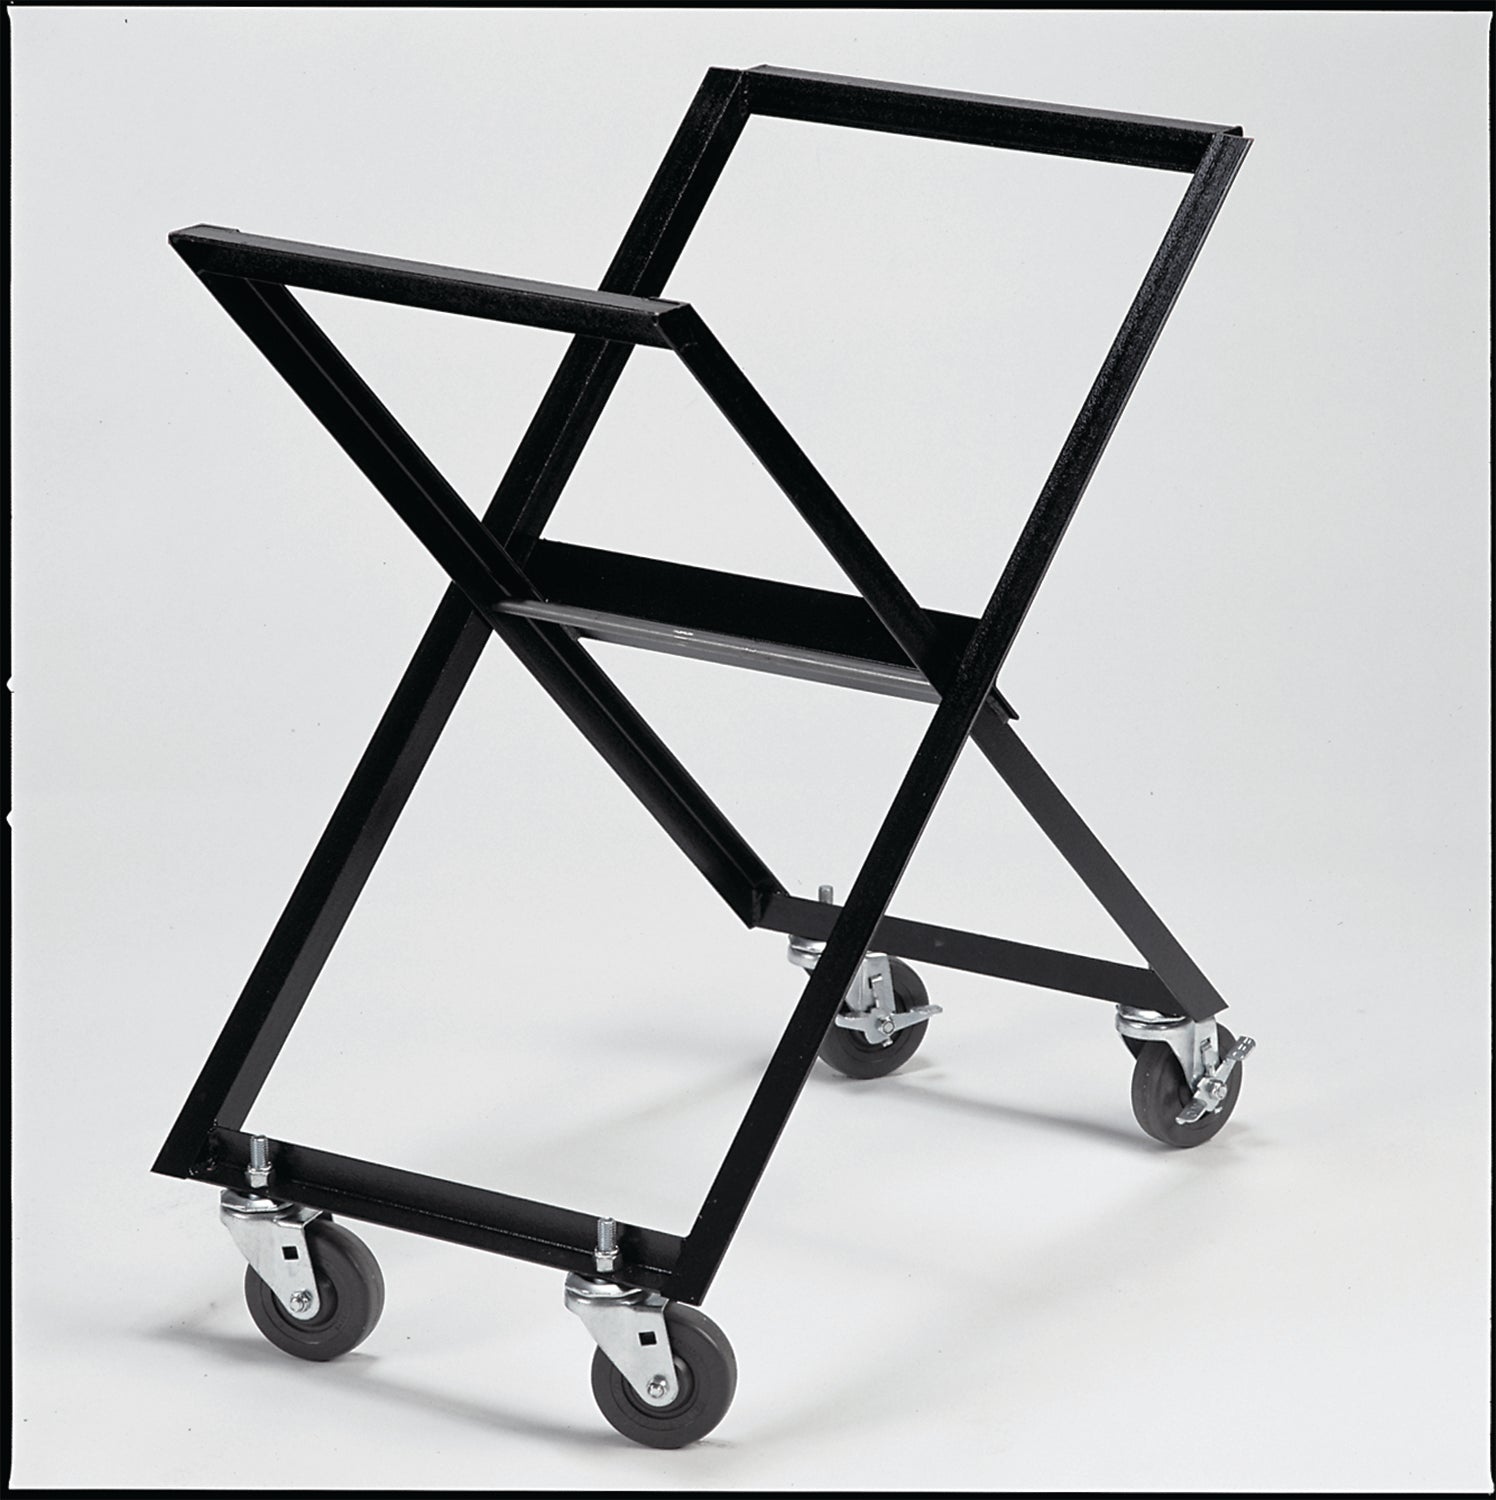 CC500MXL2 Masonry Saw Folding Stand